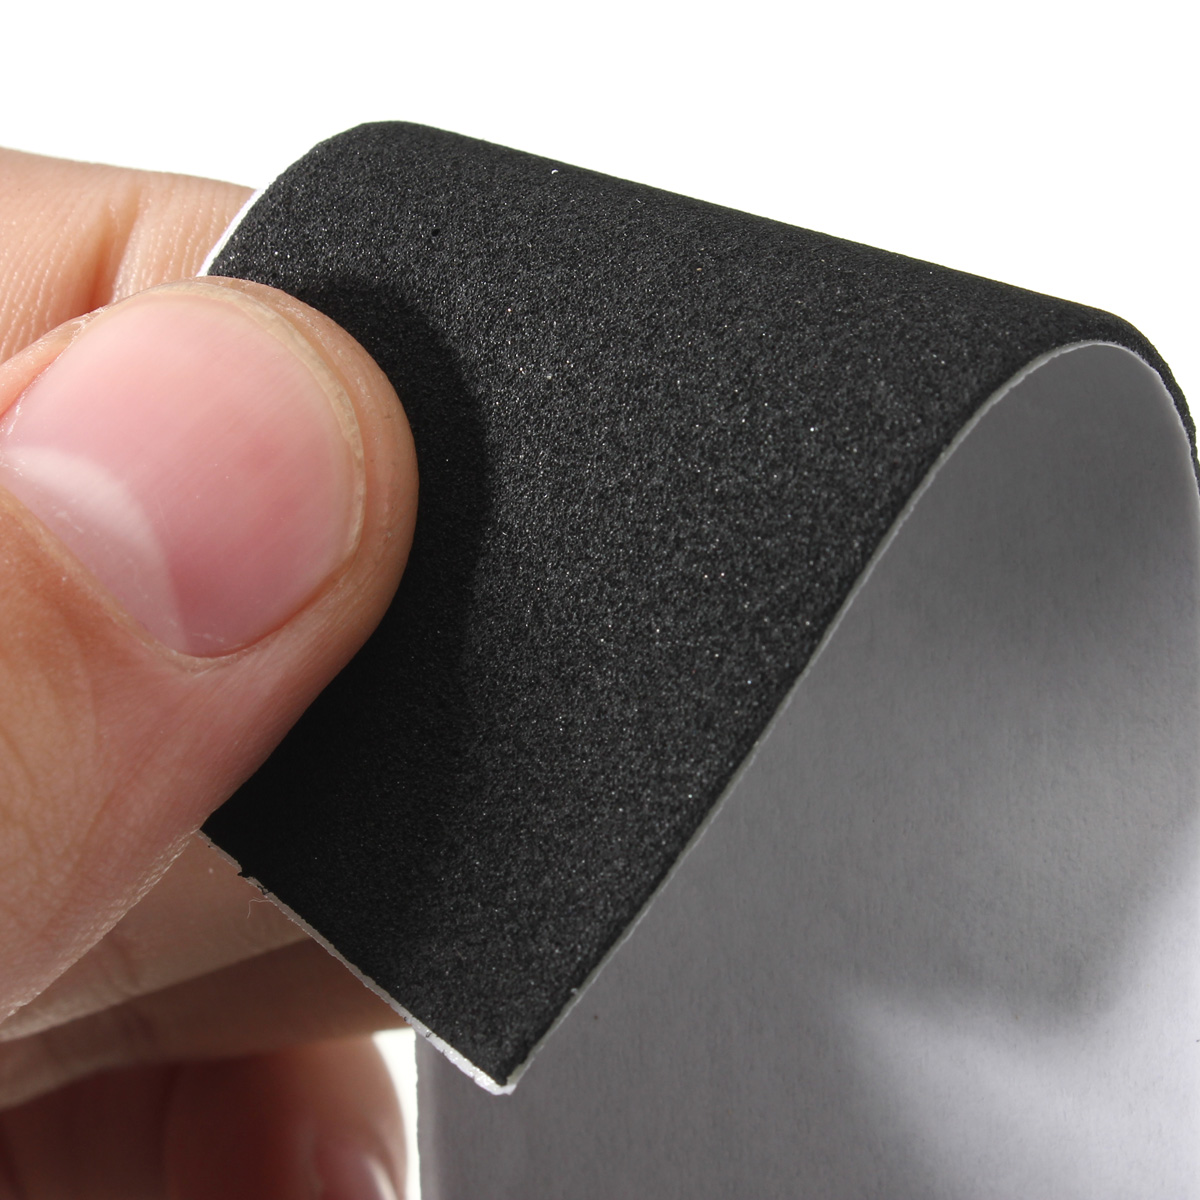 12 x Black Foam Grip Tape Self-adhesive Stickers 110x35mm for Wooden Fingerboard